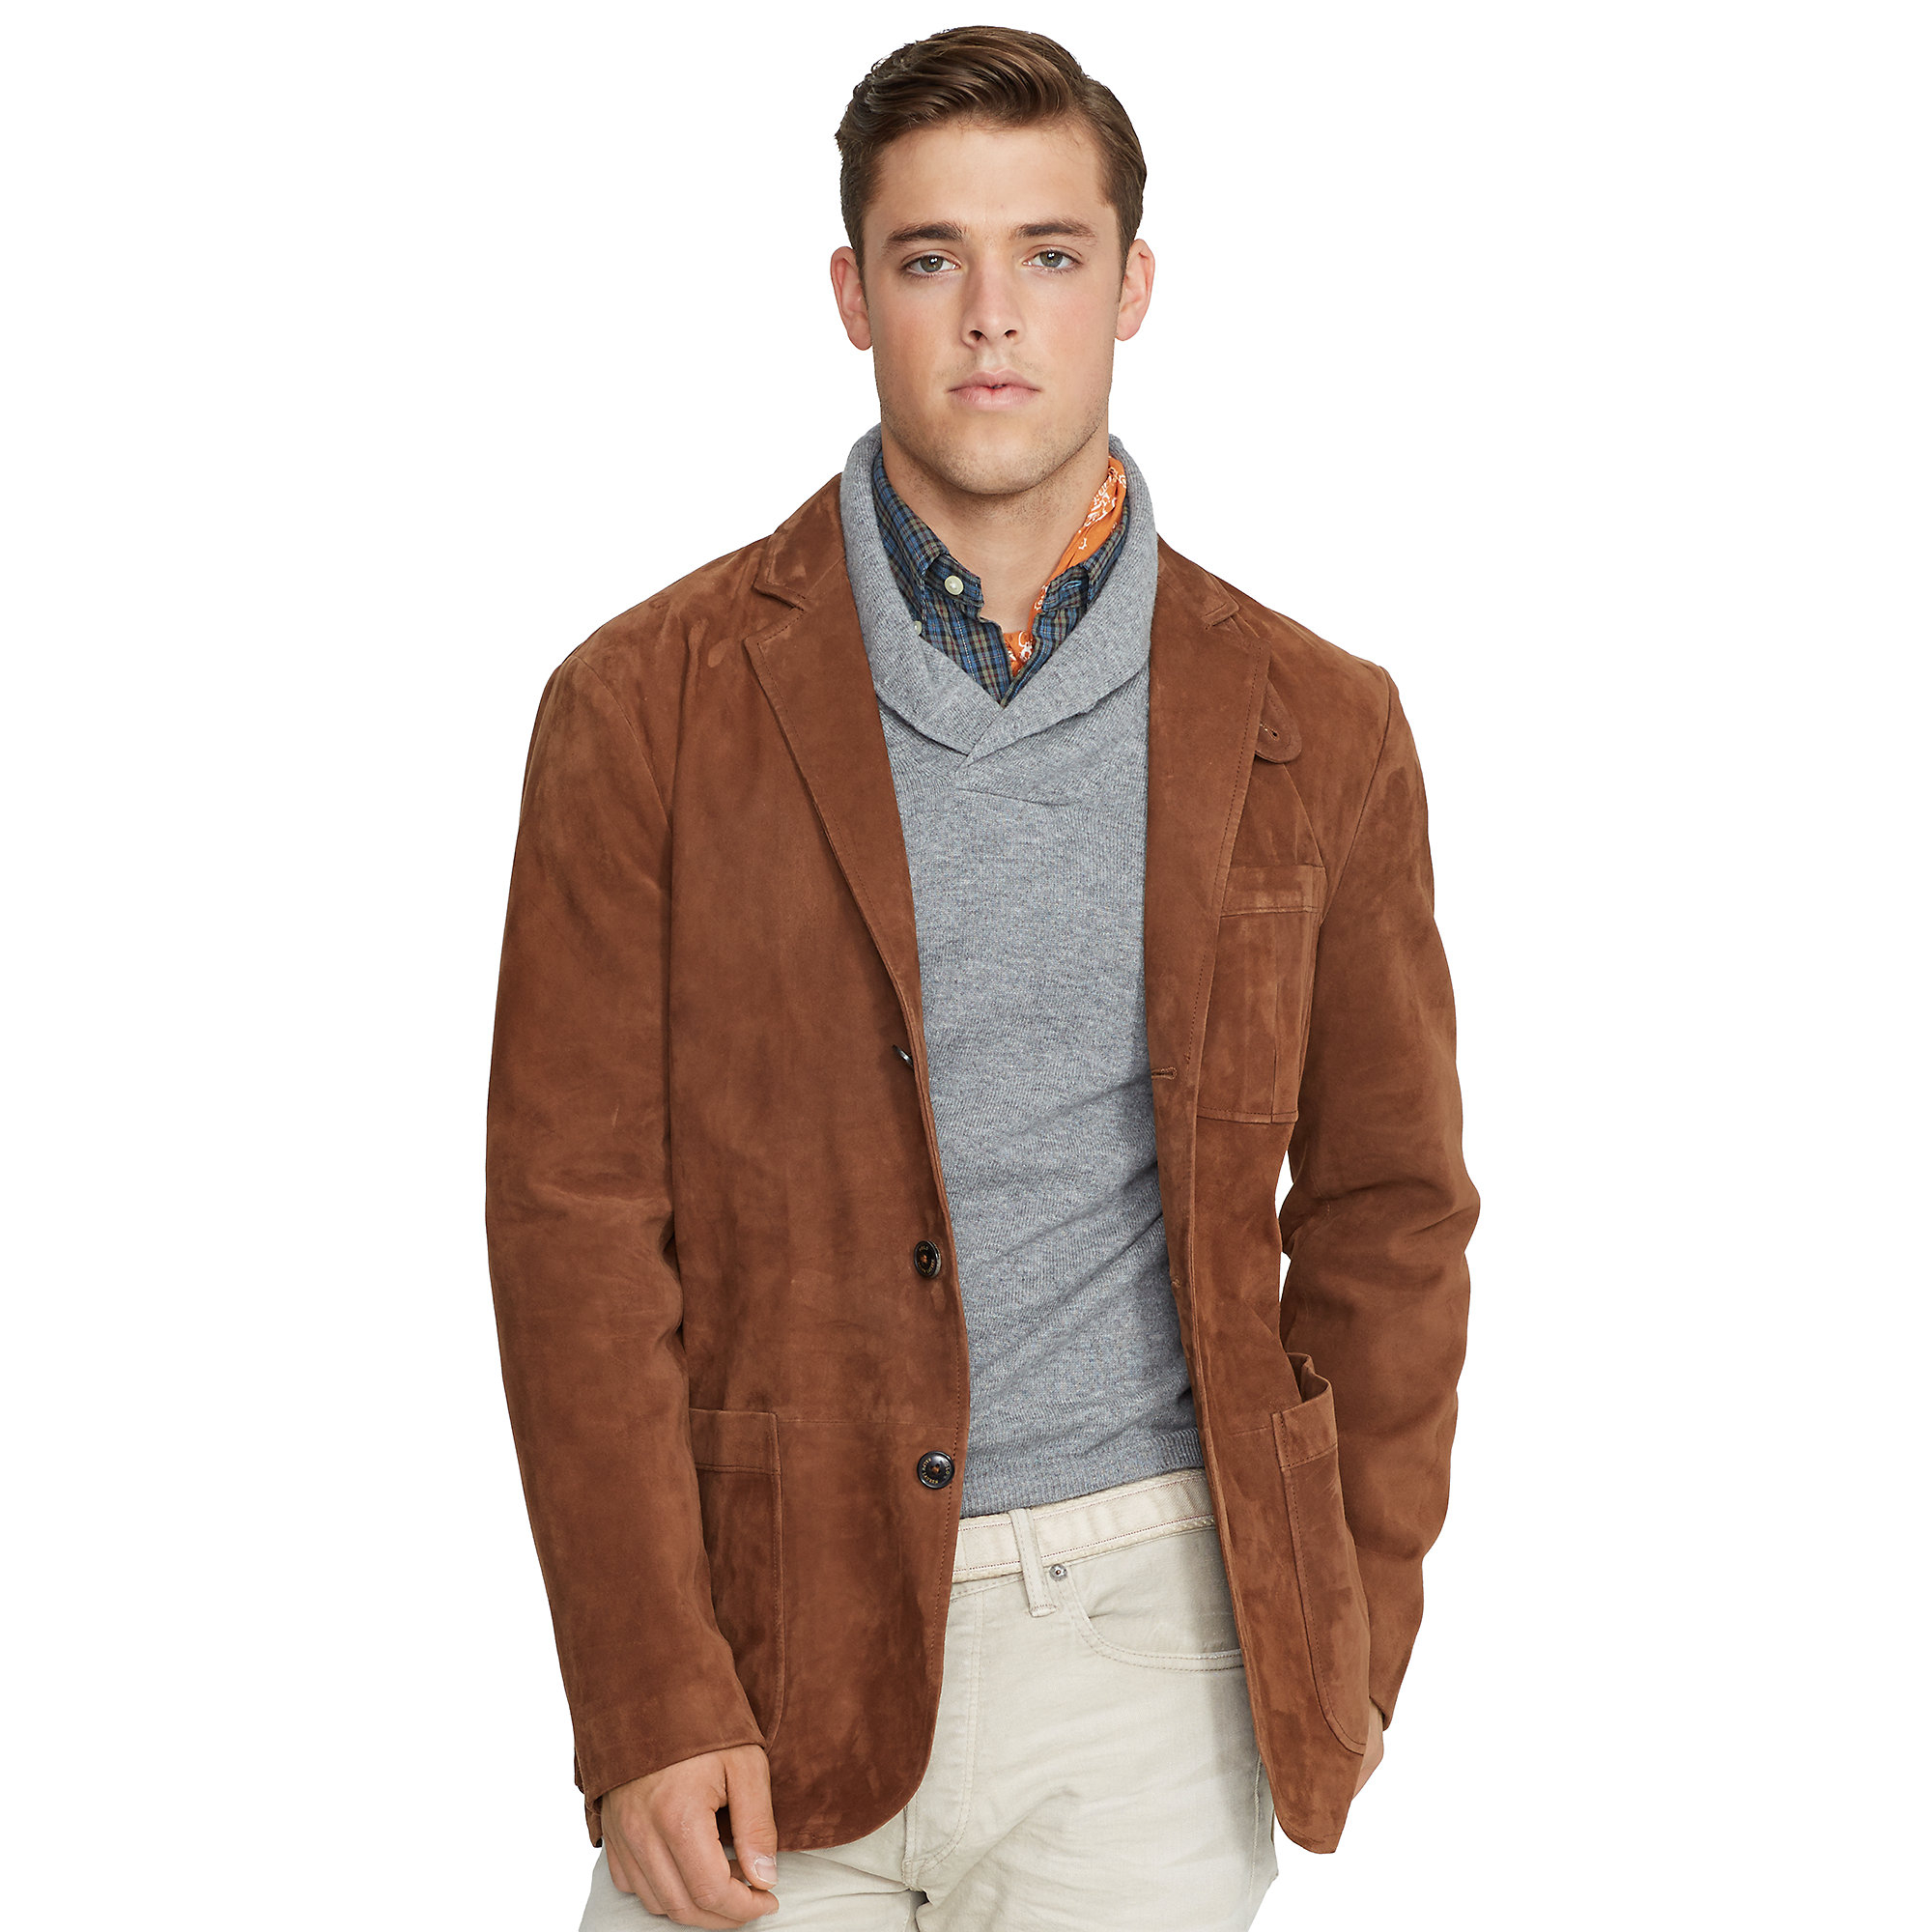 Presidential Suede Blazer Our men's leather blazer is the perfect complement to any outfit. Lightweight Highland Tweed Sport Coat $ Vintage Finish Leather Jacket $ Sale: $ 20% off Sale Price: $ World's Finest Shearling Coat $2, Featherweight Sheepskin Jacket $